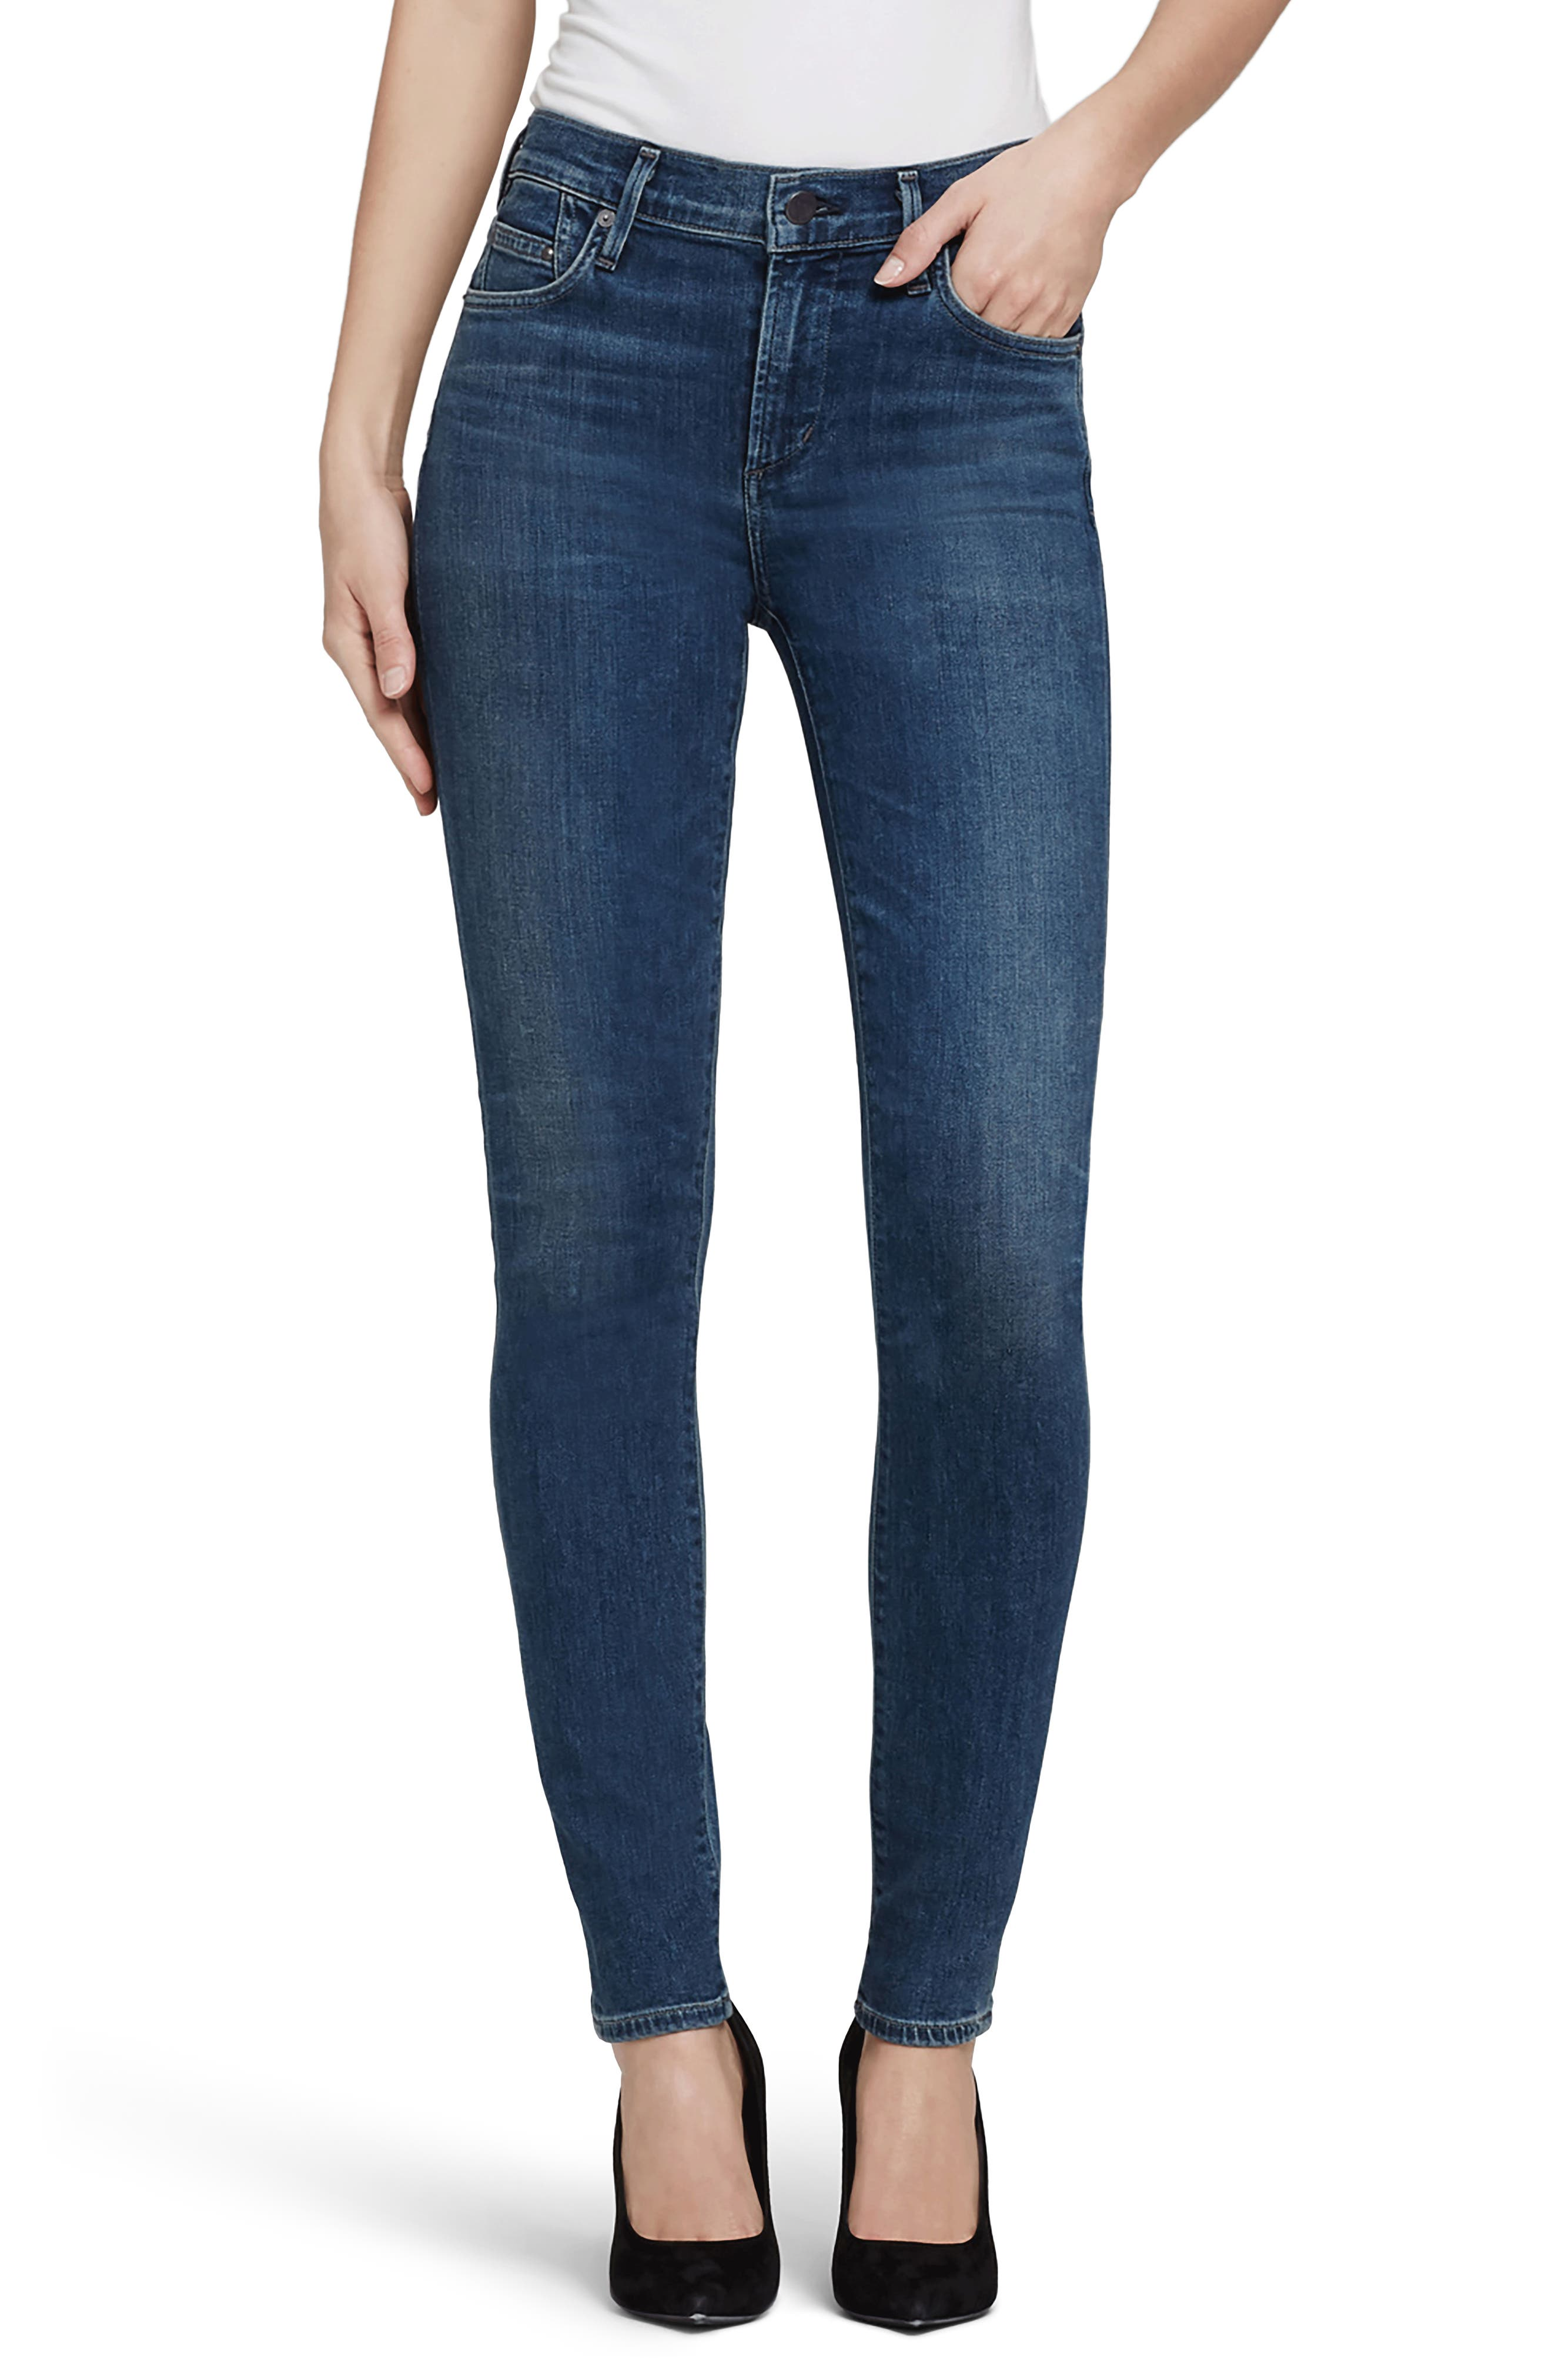 CITIZENS OF HUMANITY,                             Rocket High Waist Skinny Jeans,                             Main thumbnail 1, color,                             430